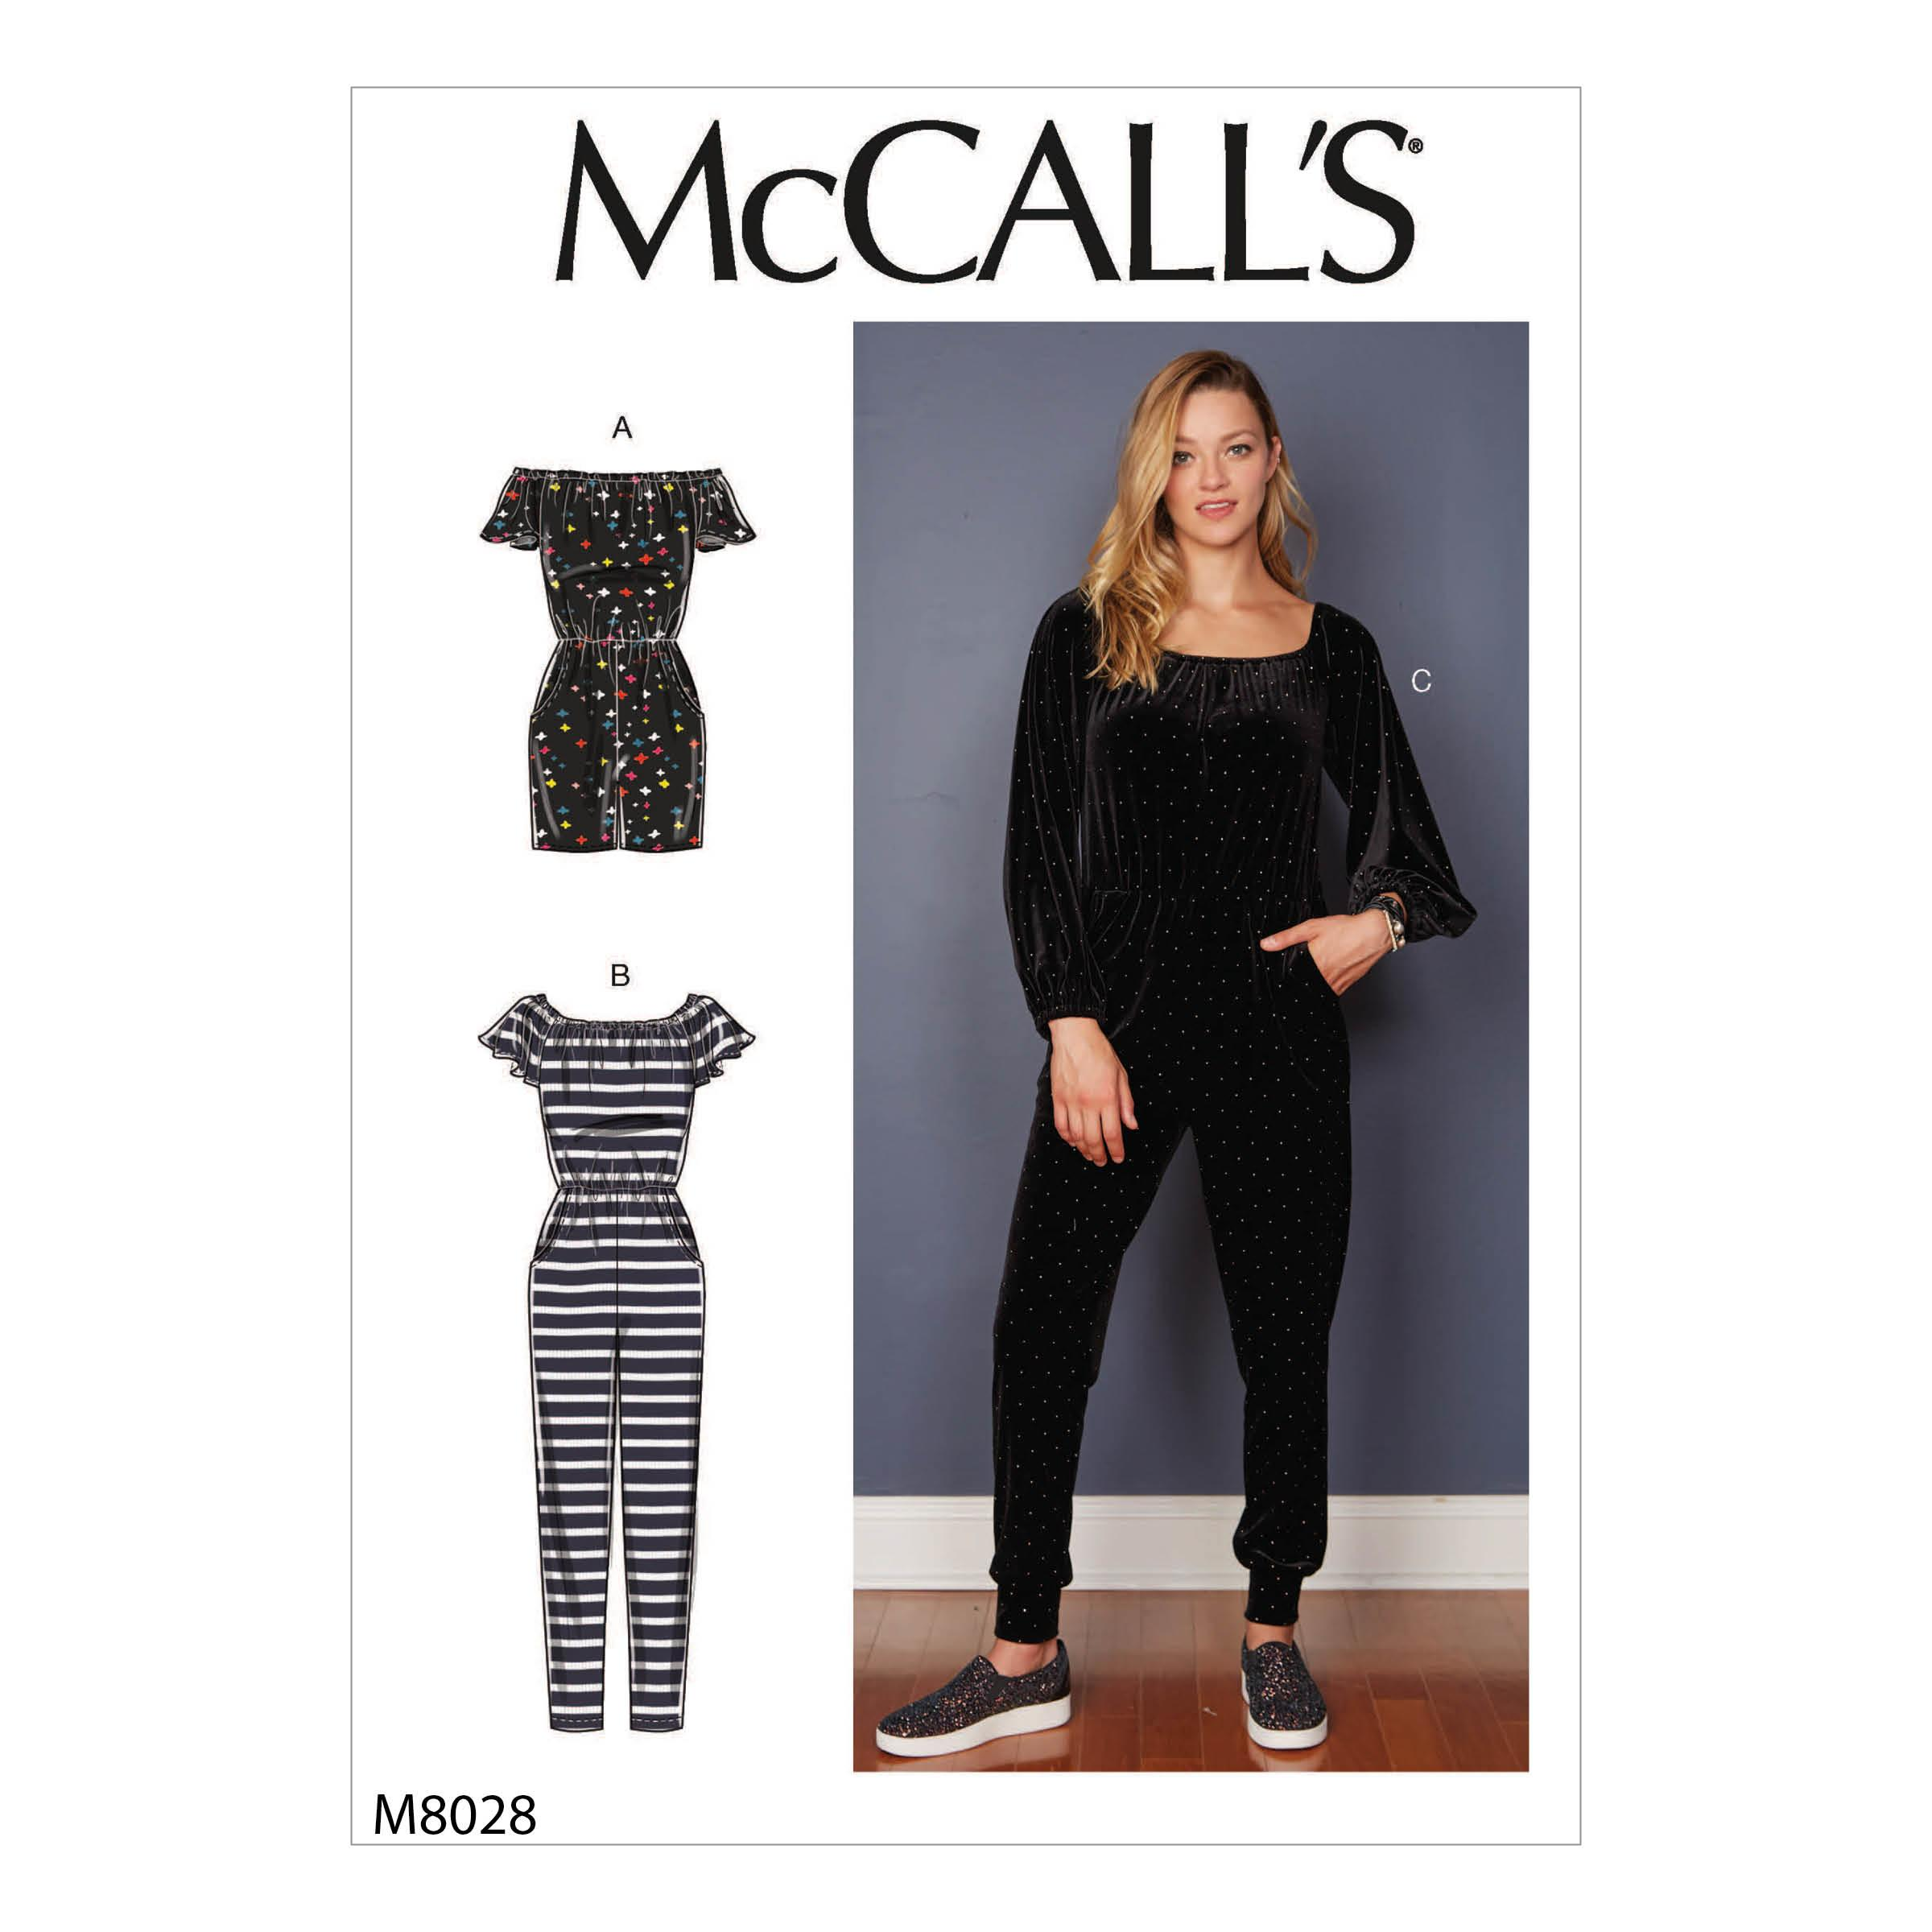 McCalls M8028 Misses Pants, Jumpsuits & Shorts